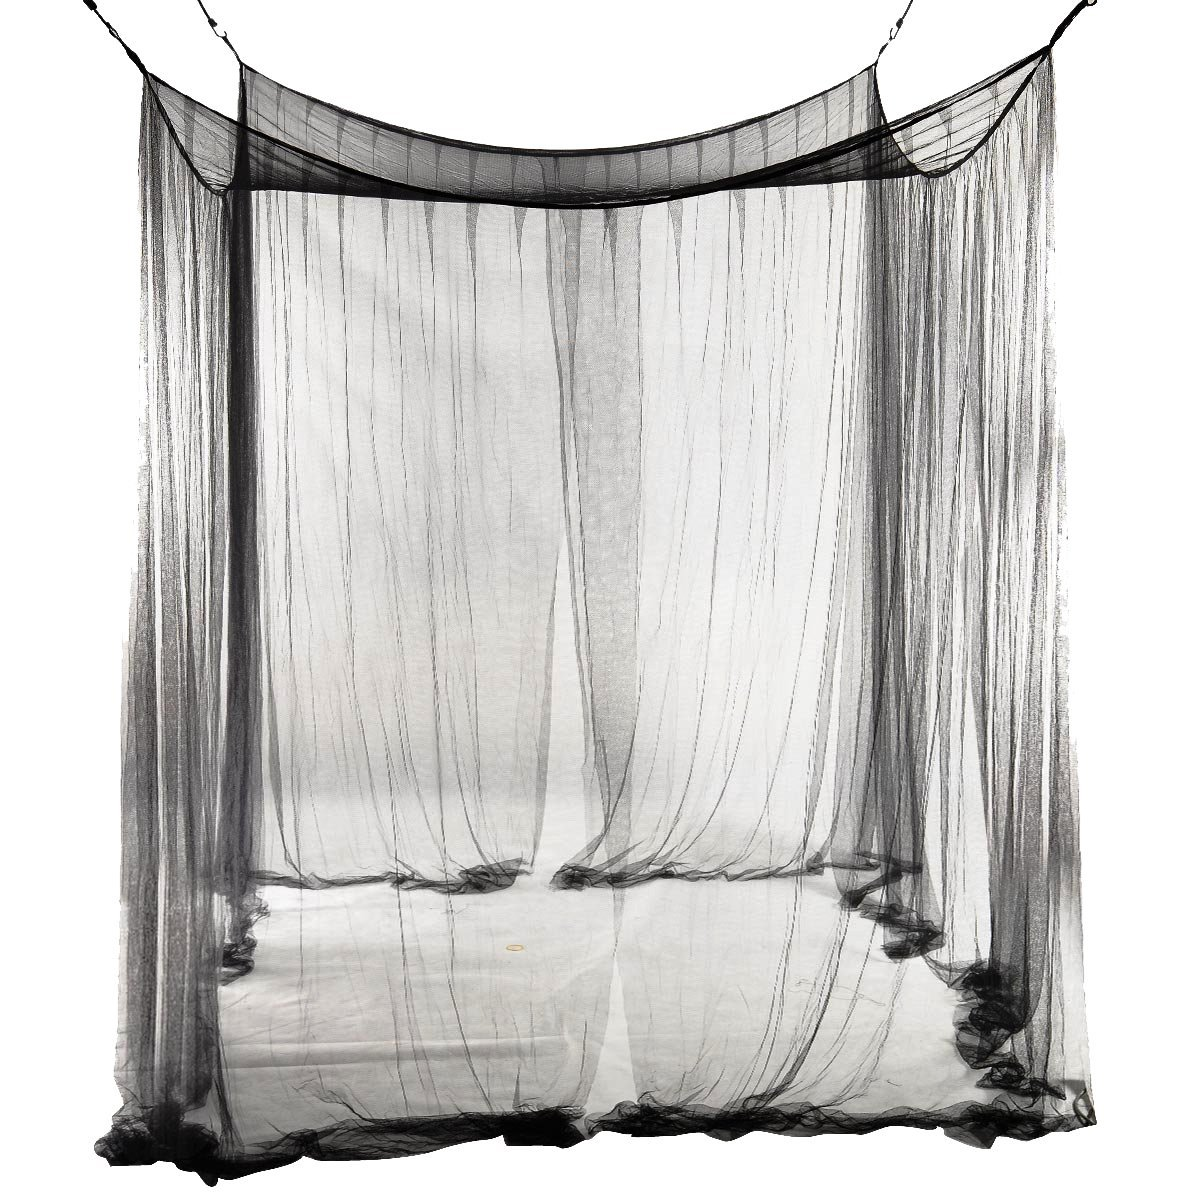 SODIAL(R) 4-Corner Bed Netting Canopy Mosquito Net for Queen/King Sized Bed 190210240cm (Black)